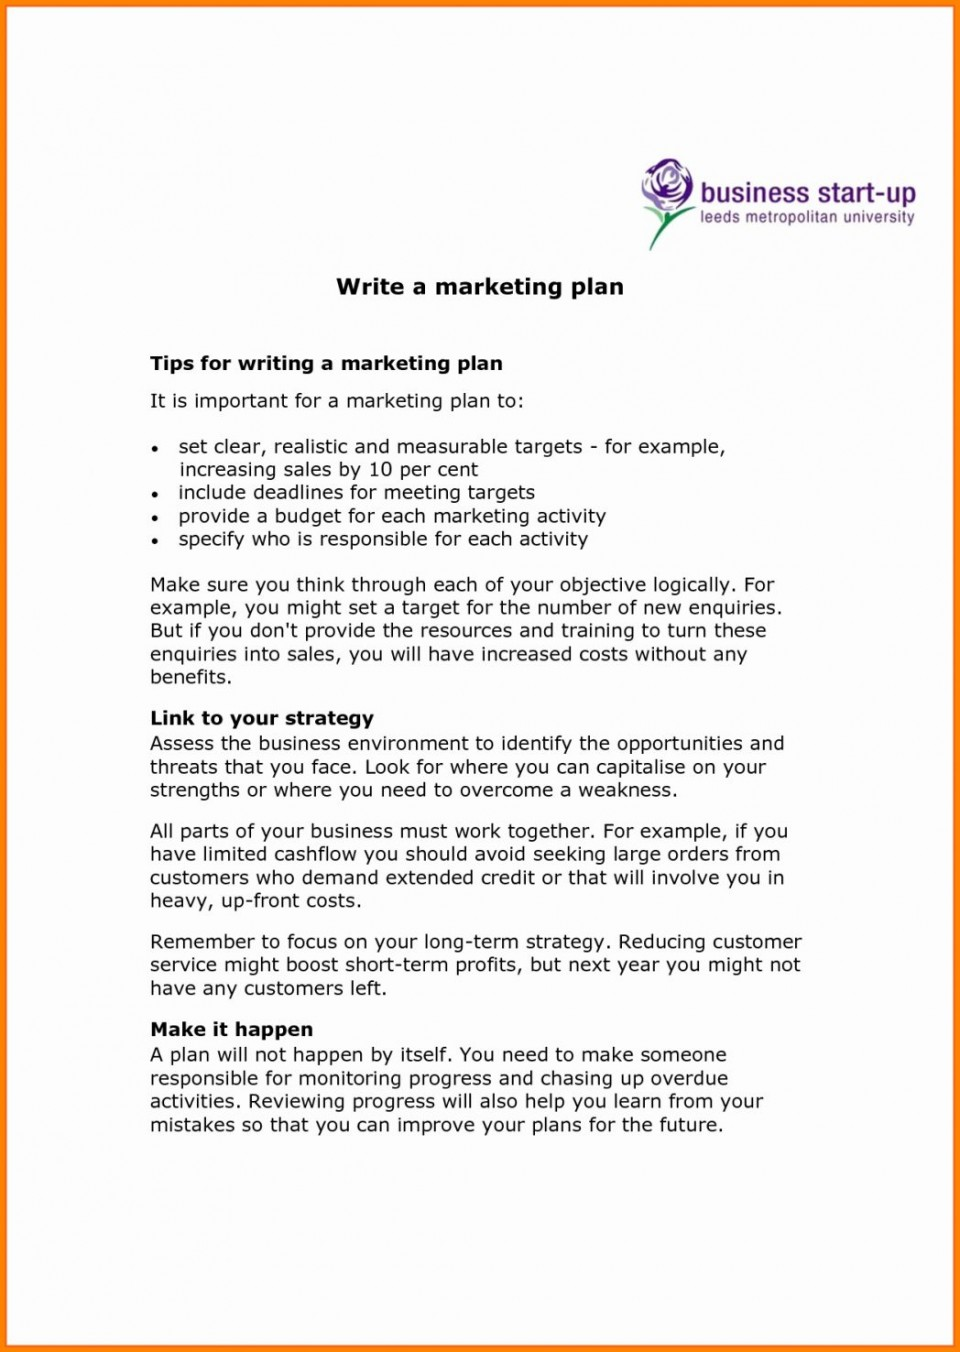 022 Research Paper Parts Of And Its Definition Pdf Marketing Plan Example Business Genxeg Quizlet Sample Proposal Bestf Real Estate Bussines Small Company Sba Executive Staggering A 960